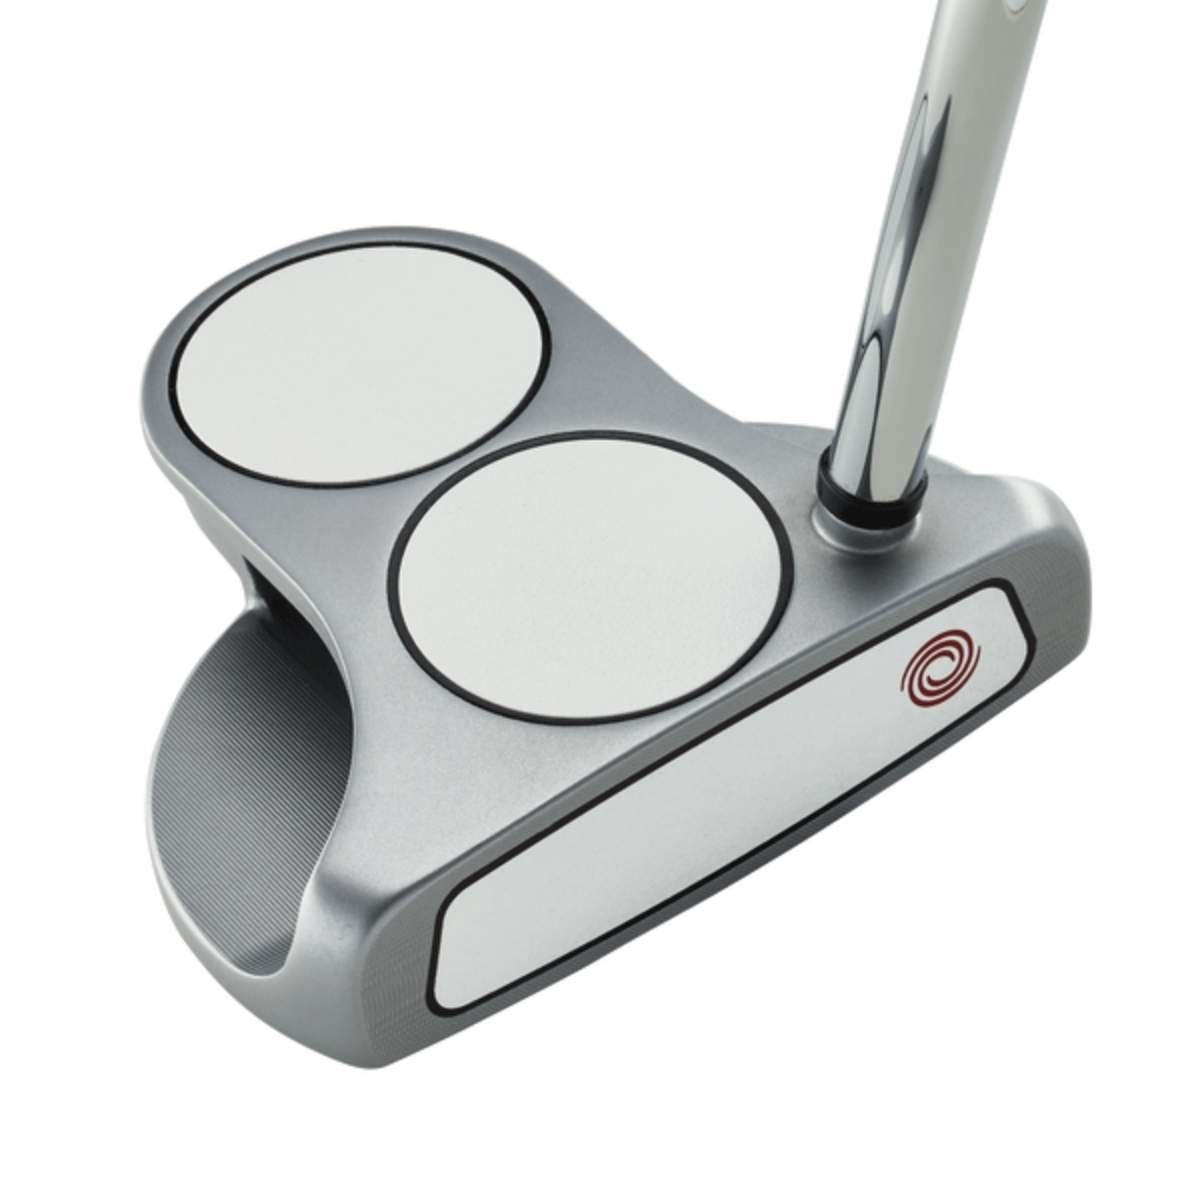 Odyssey White Hot OG 2-Ball Left Hand Putter